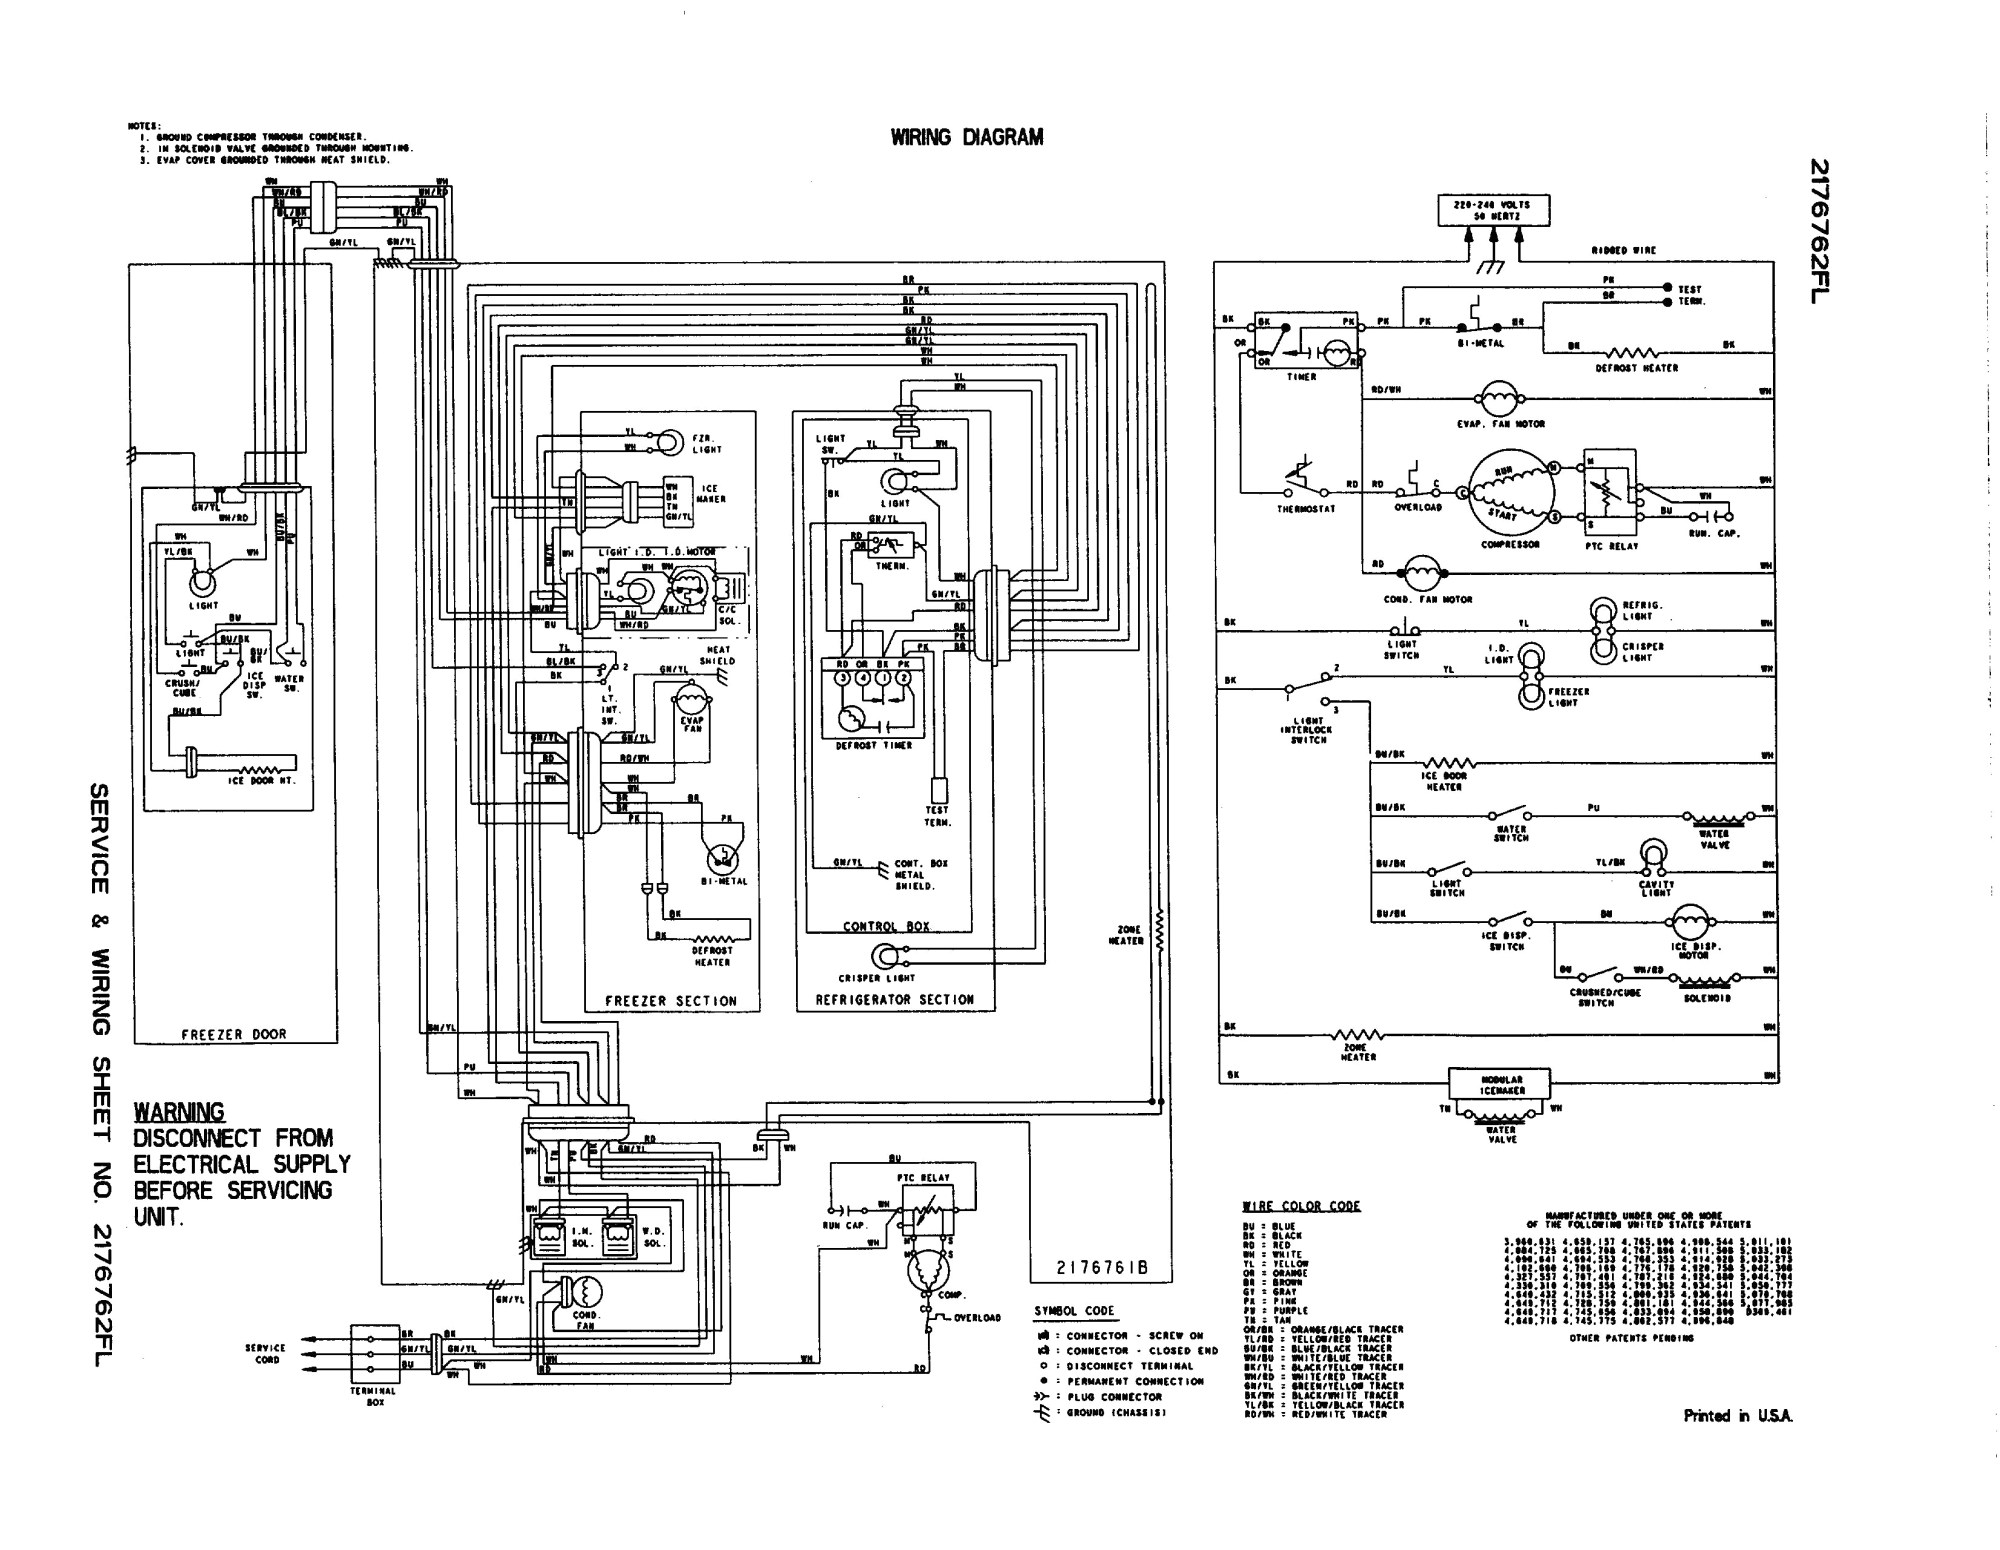 hight resolution of model wiring whirlpool diagram dryer ler7646aw2 wiring  diagram loadwhirlpool wiring schematic wiring diagram